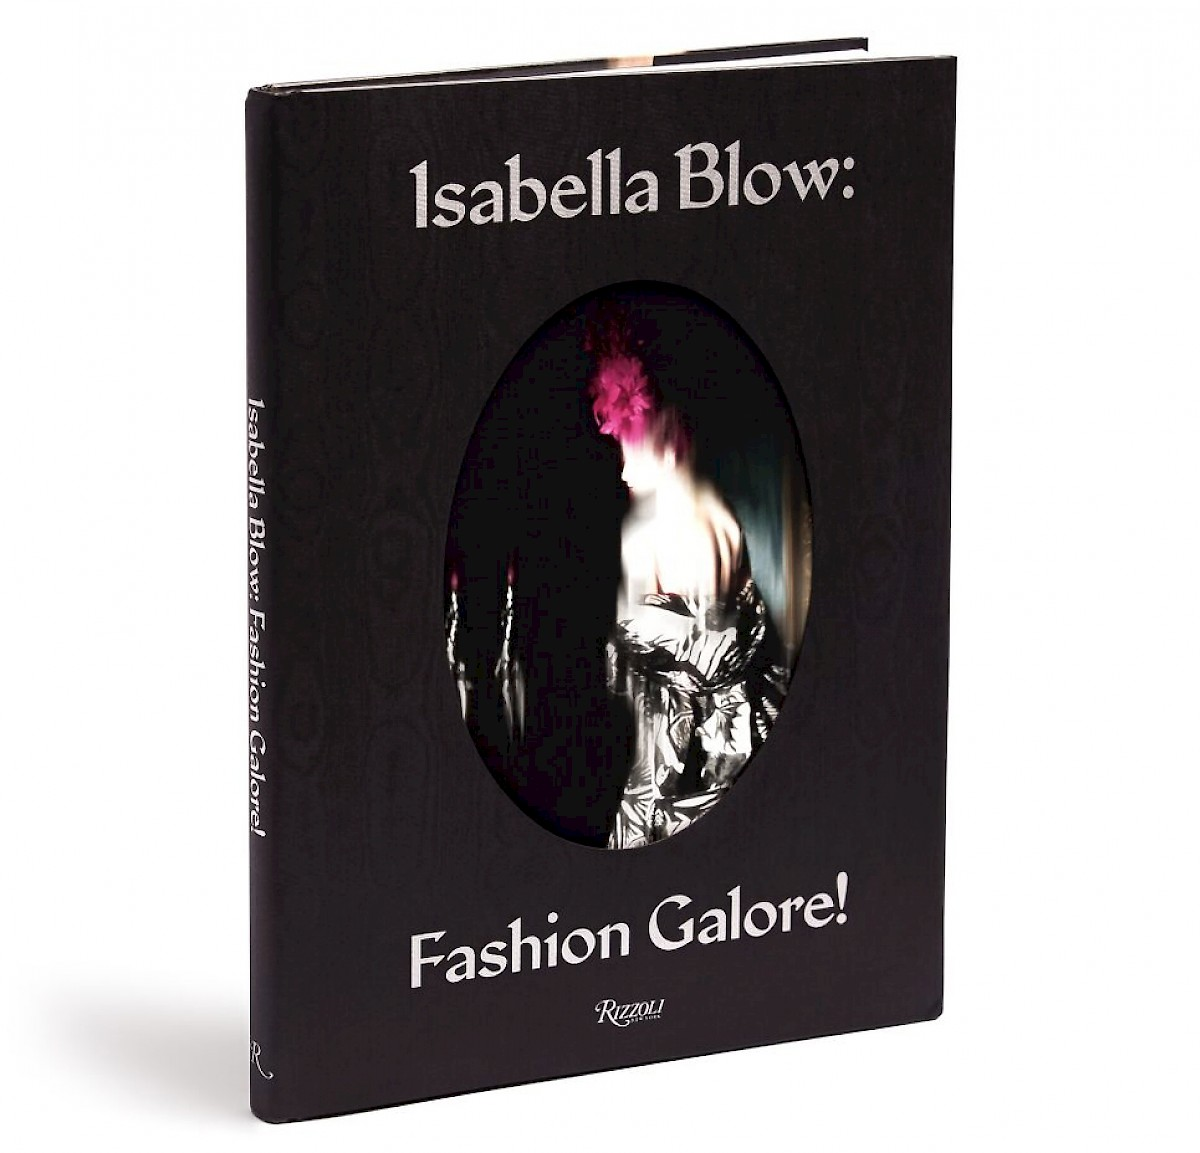 isabella-blow-fashion-galore-261233-kb.1200x0.jpg